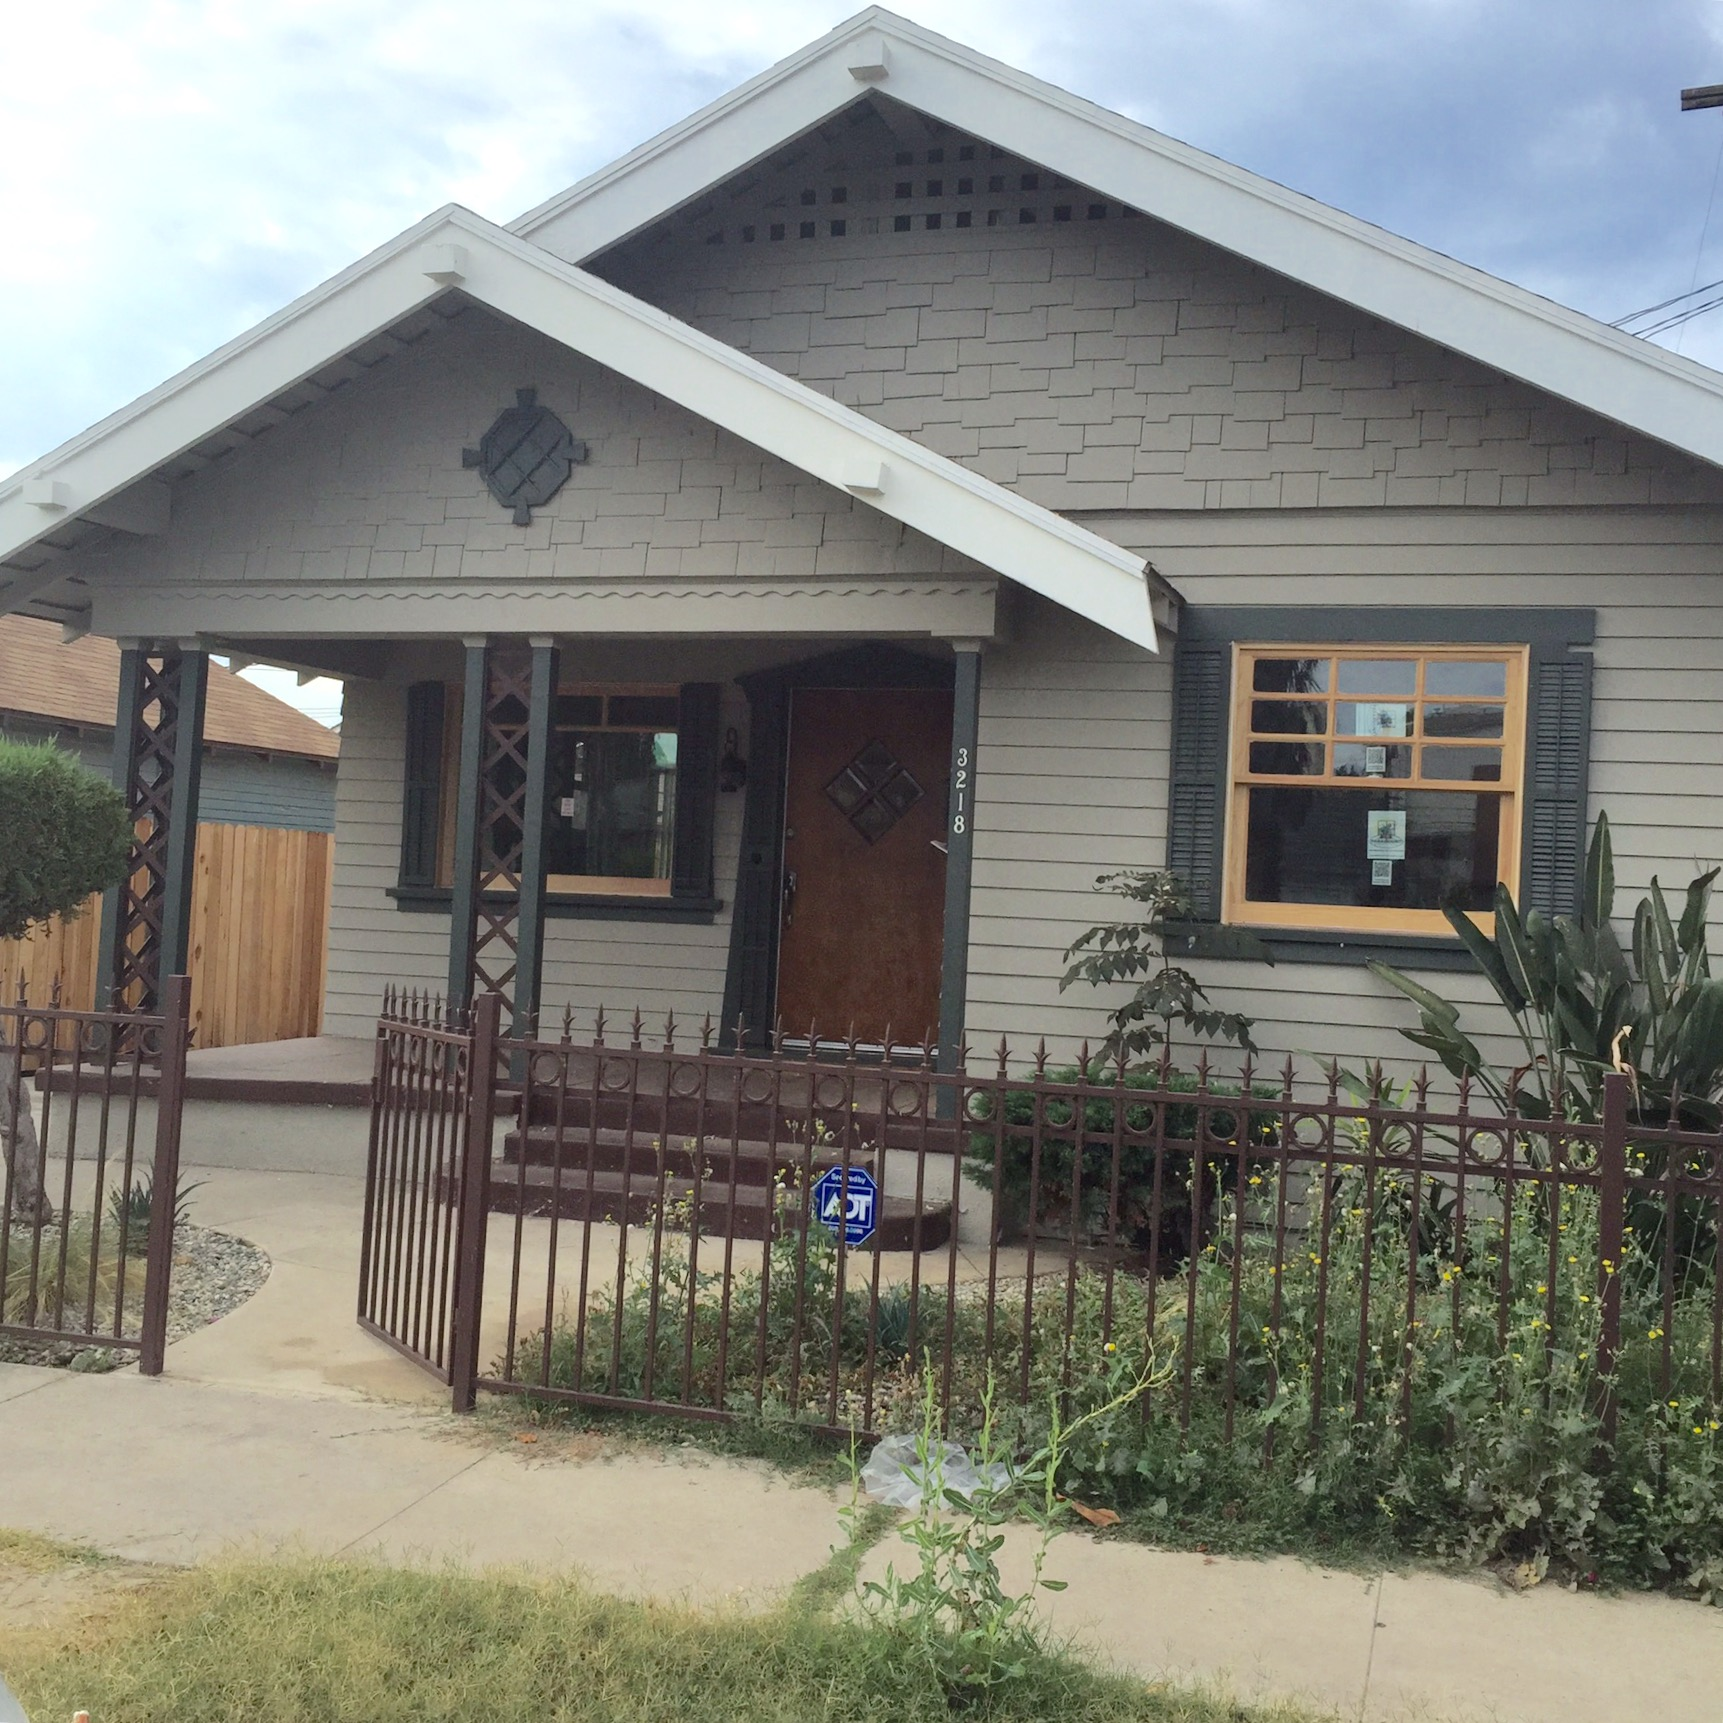 Charming 3 BED + 2 BATH Craftsman in Jefferson Park. Gorgeous original details. Grassy backyard perfect for entertaining.Full of charm!  Claire Lissone   tel: 310.689.9689   email: claire@realestate-collective.com   calBRE#01426130